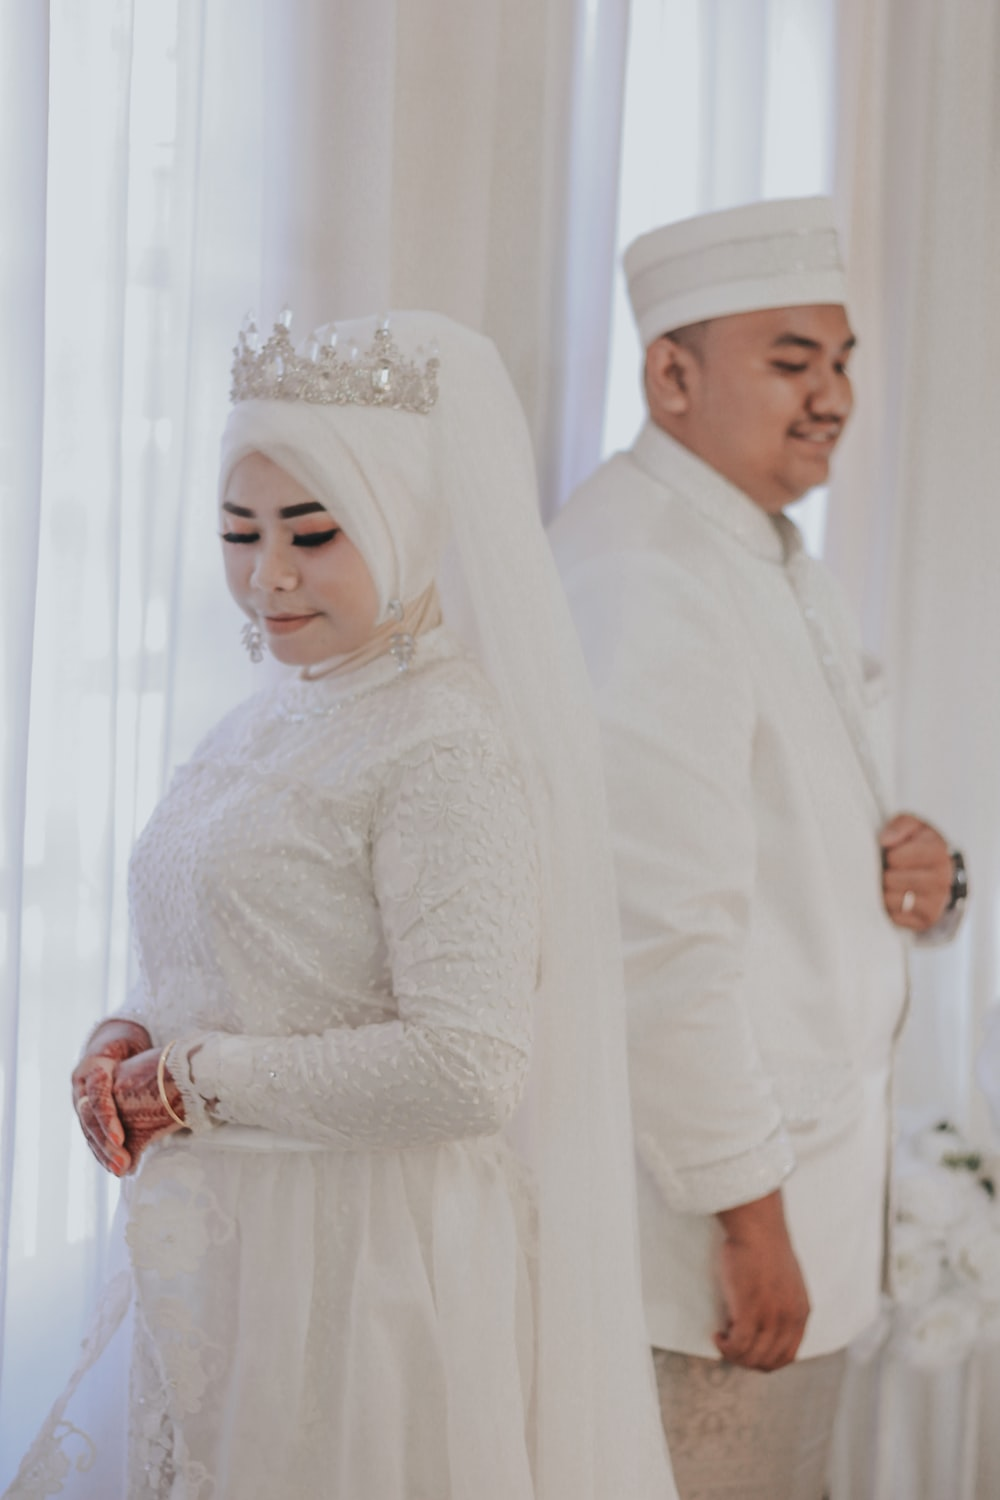 man and woman in wedding attire standing in room